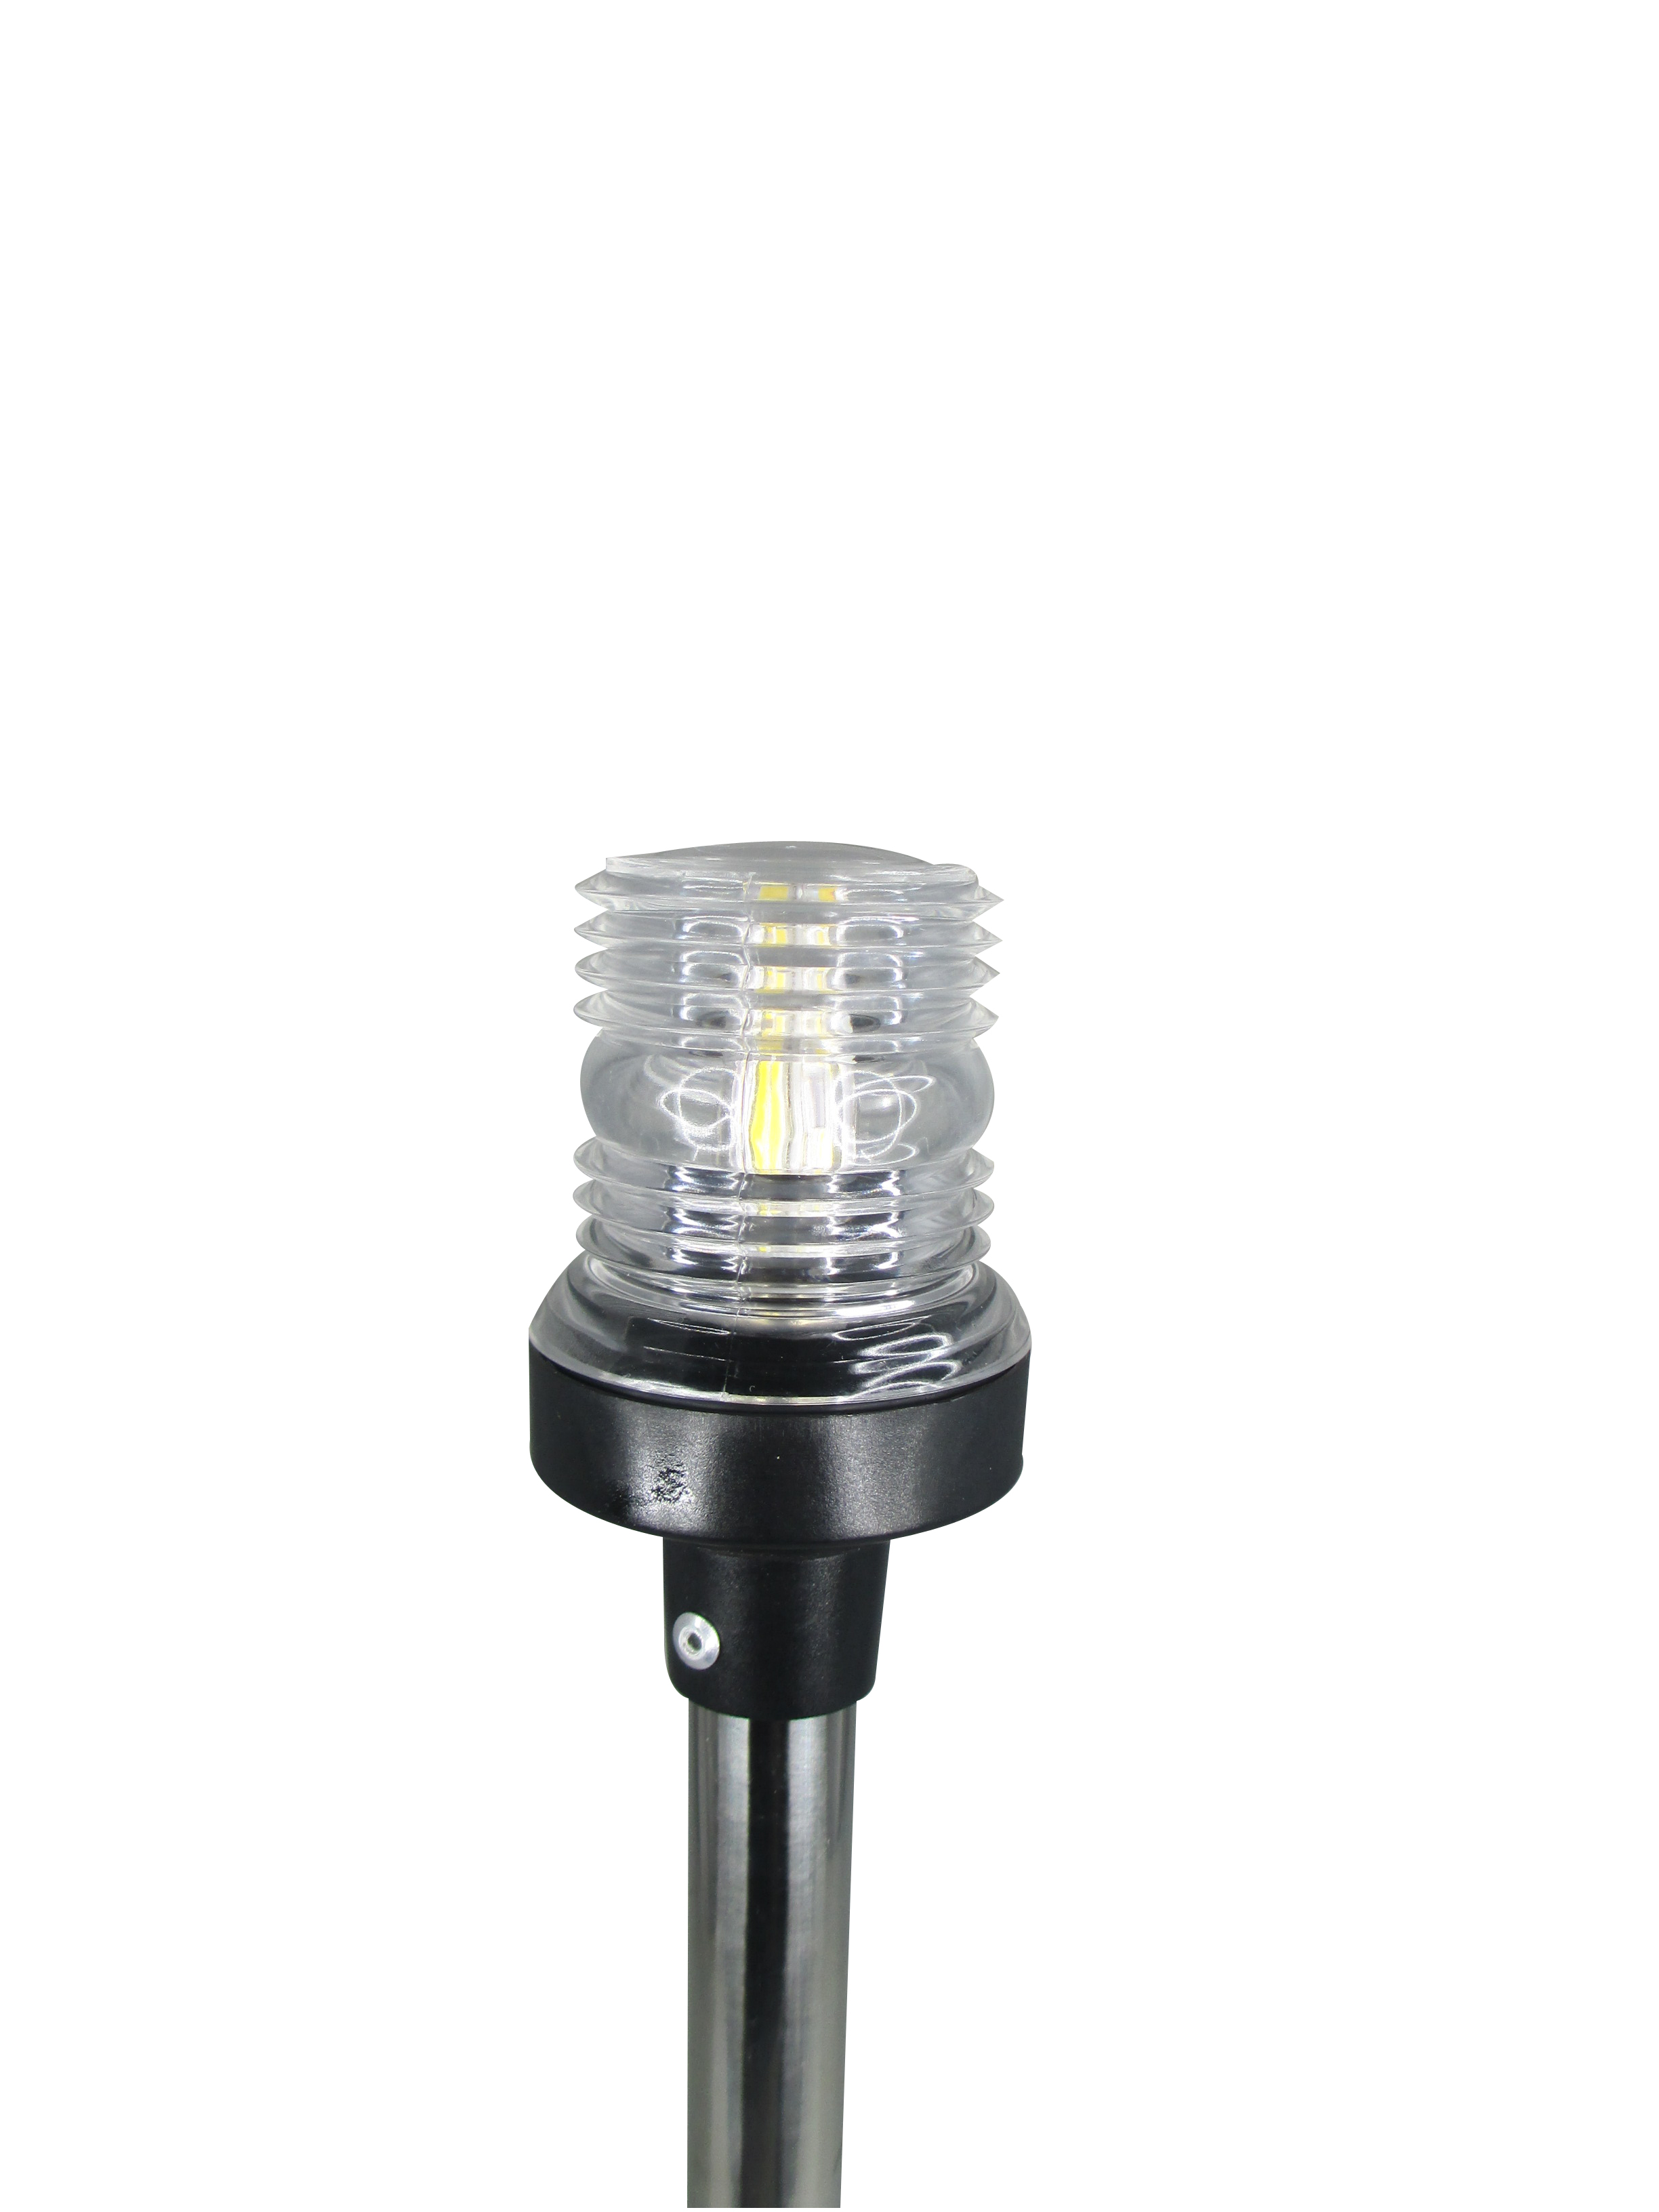 Pactrade Marine Boat Pontoon All Round Anchor Led